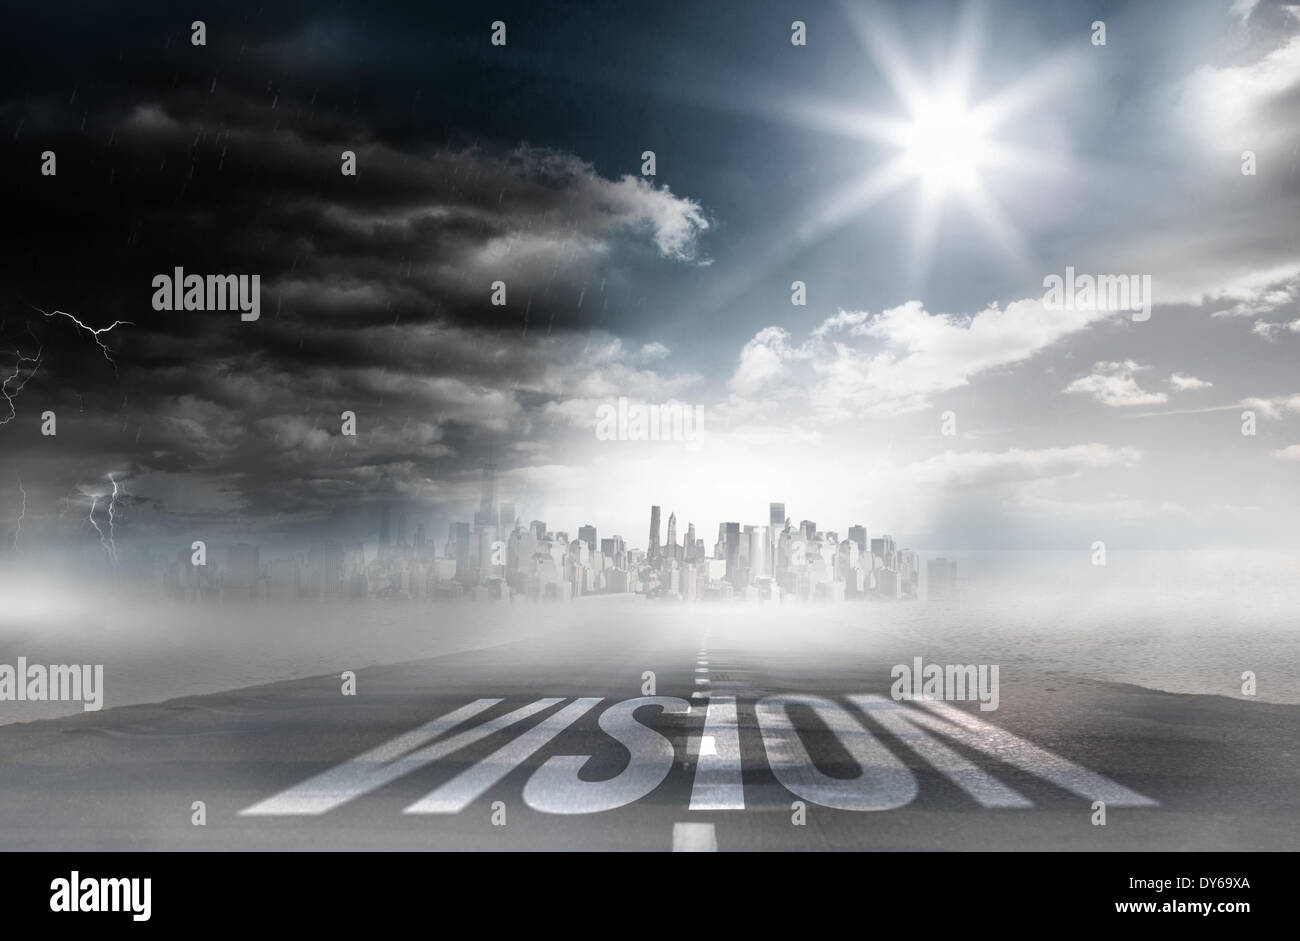 Vision against open road - Stock Image